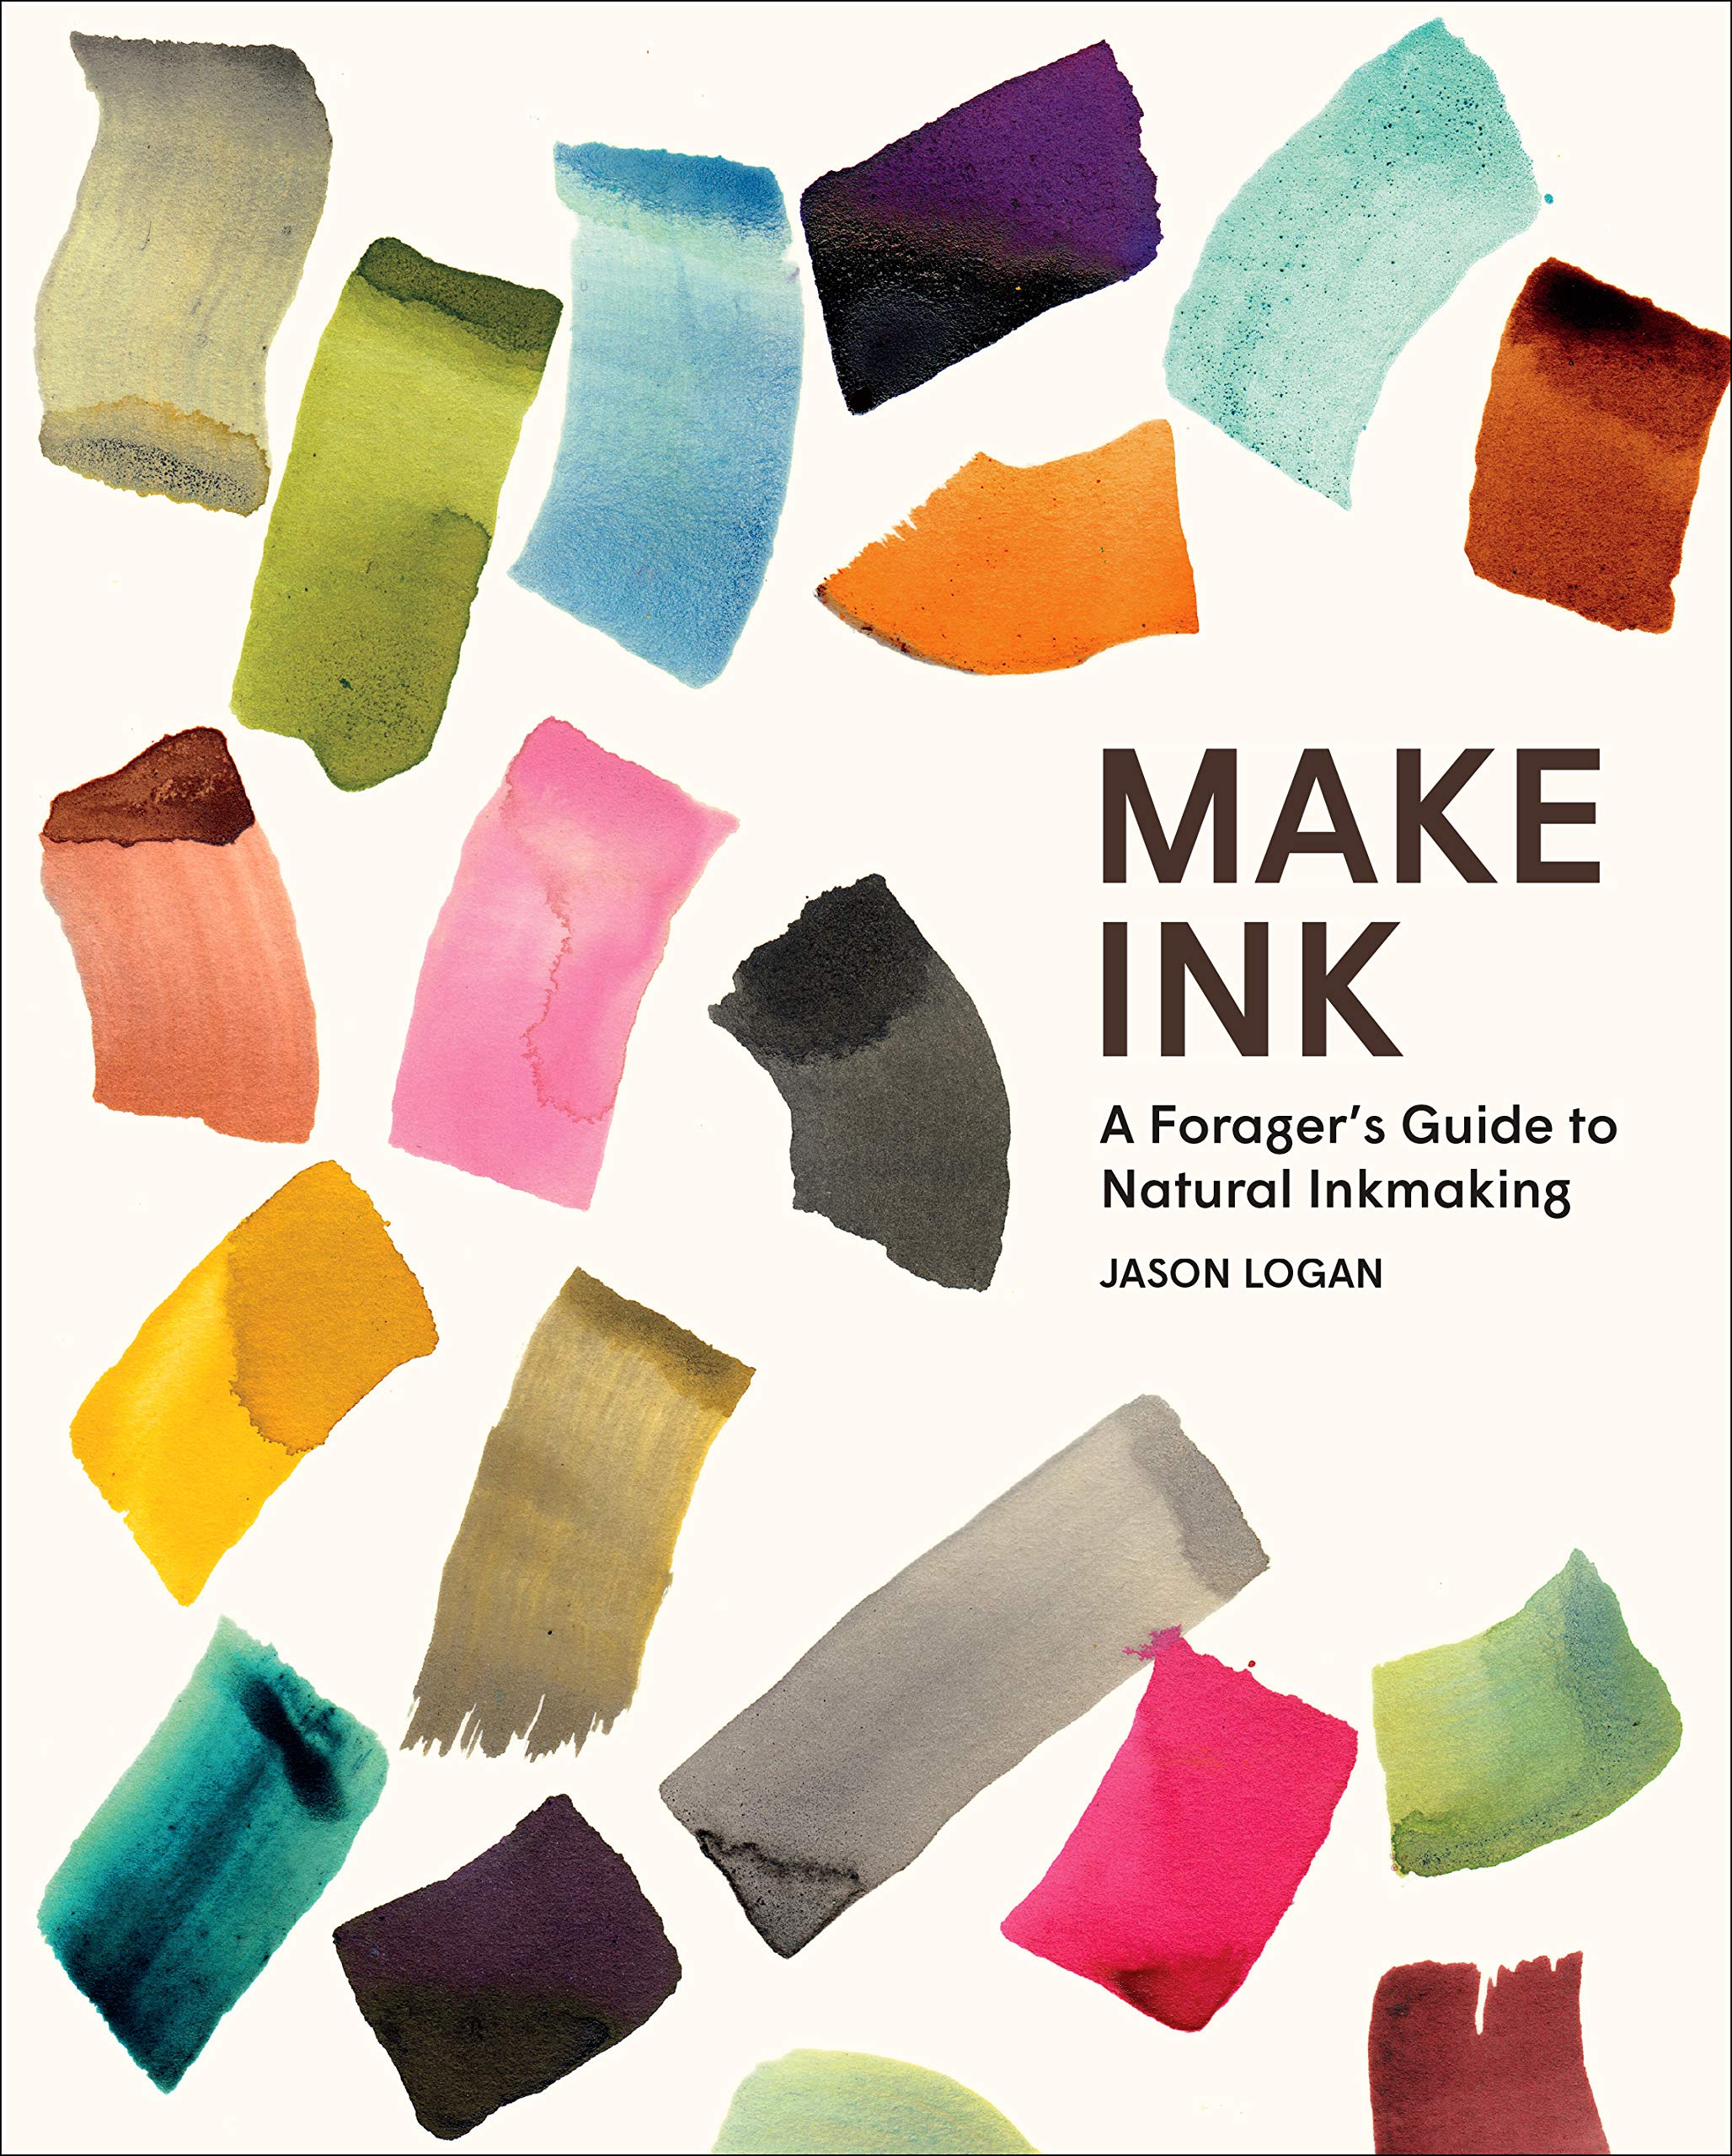 Pick of the Week: Make Ink: A Forager's Guide to Natural Inkmaking